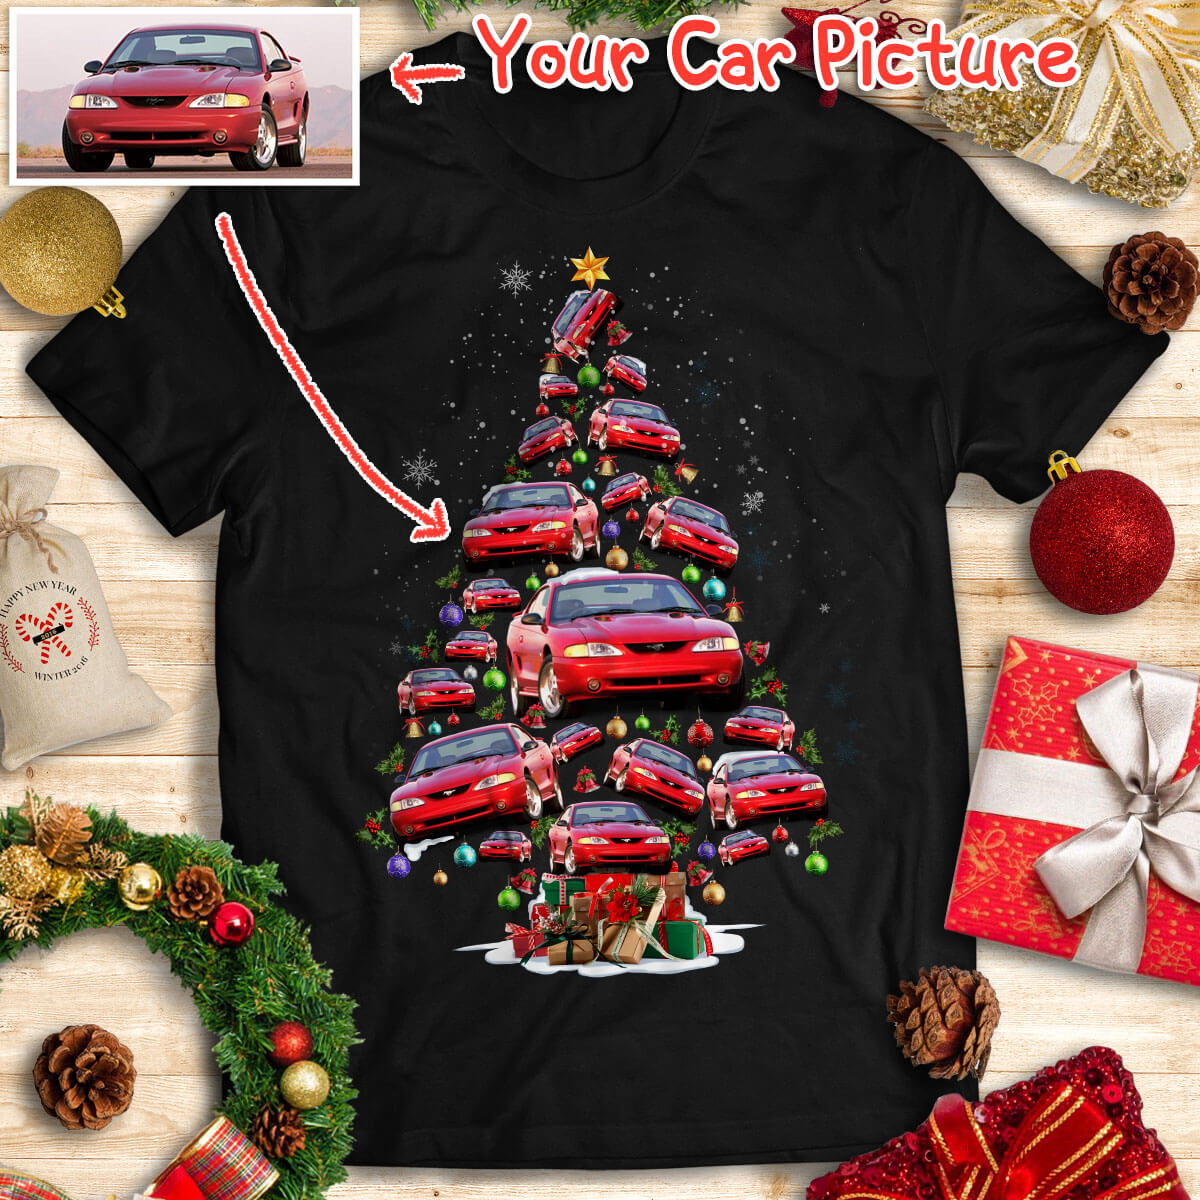 Personalized Christmas T-shirt - Christmas Tree From Your Cars